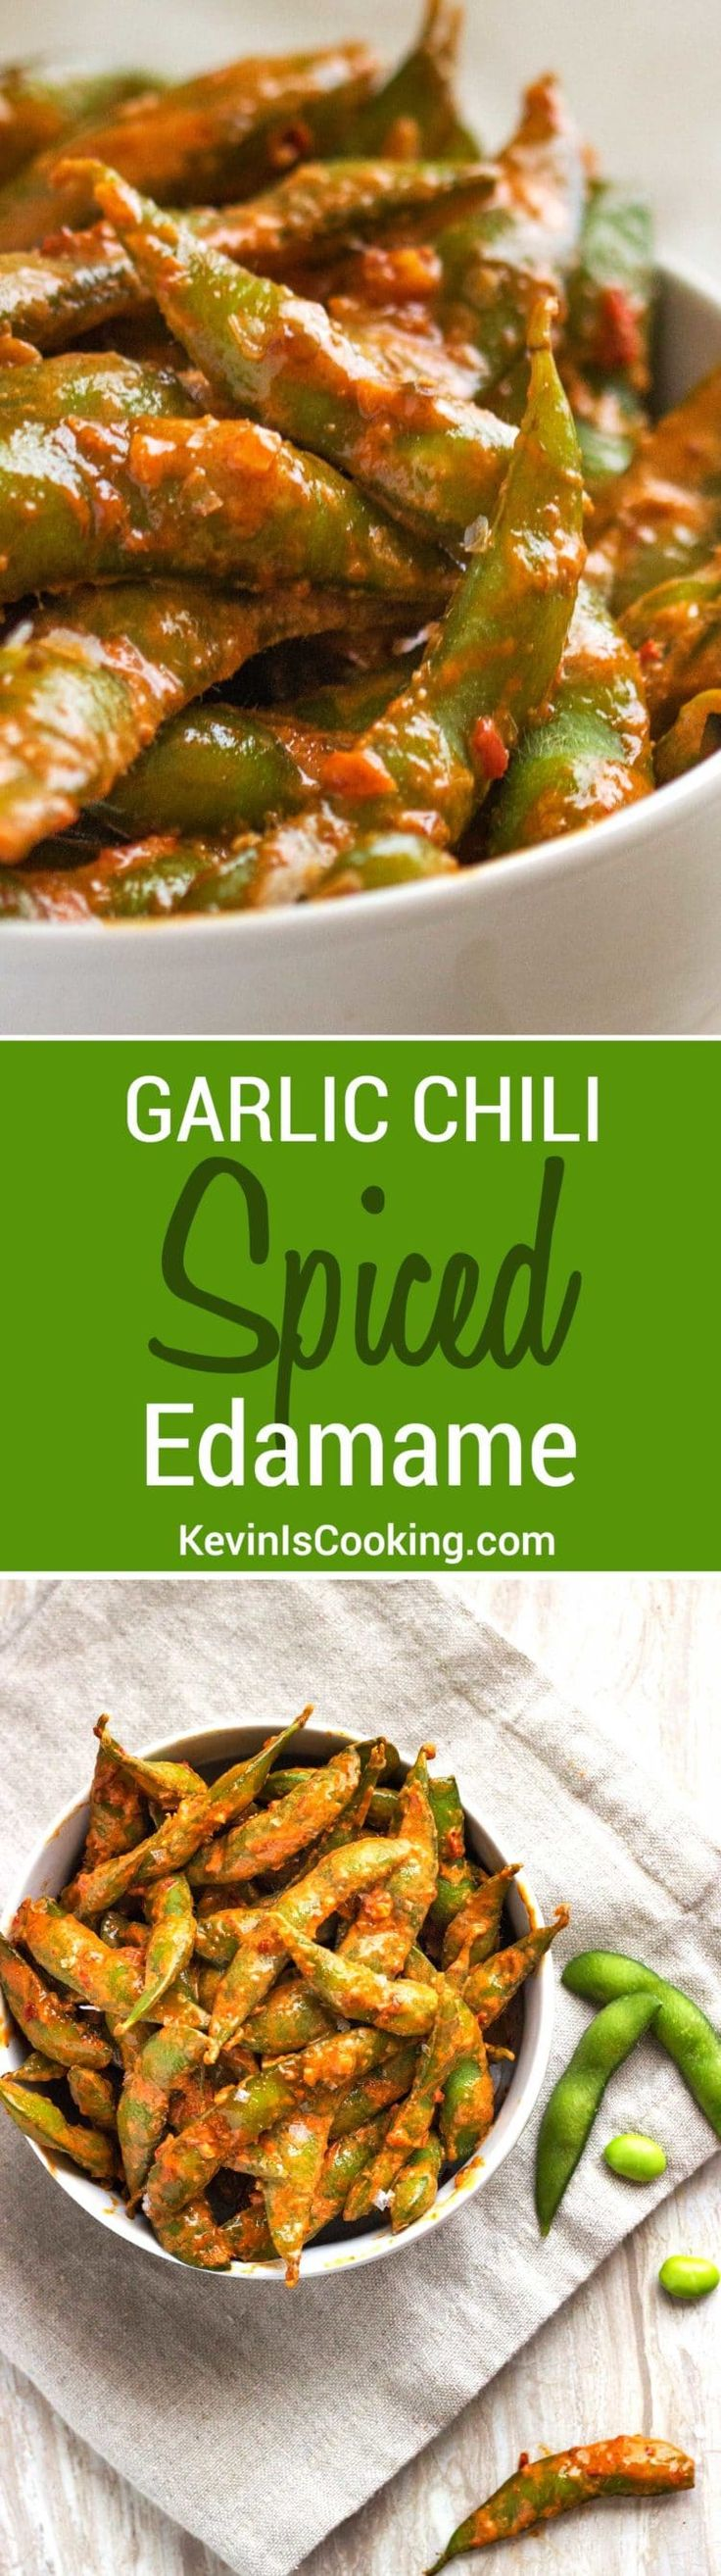 Garlic Chili Spicy Edamame arean easy to prepare snack that can be on the table in 10 minutes. Made with a wonderful creamy garlic and chili paste sauce!